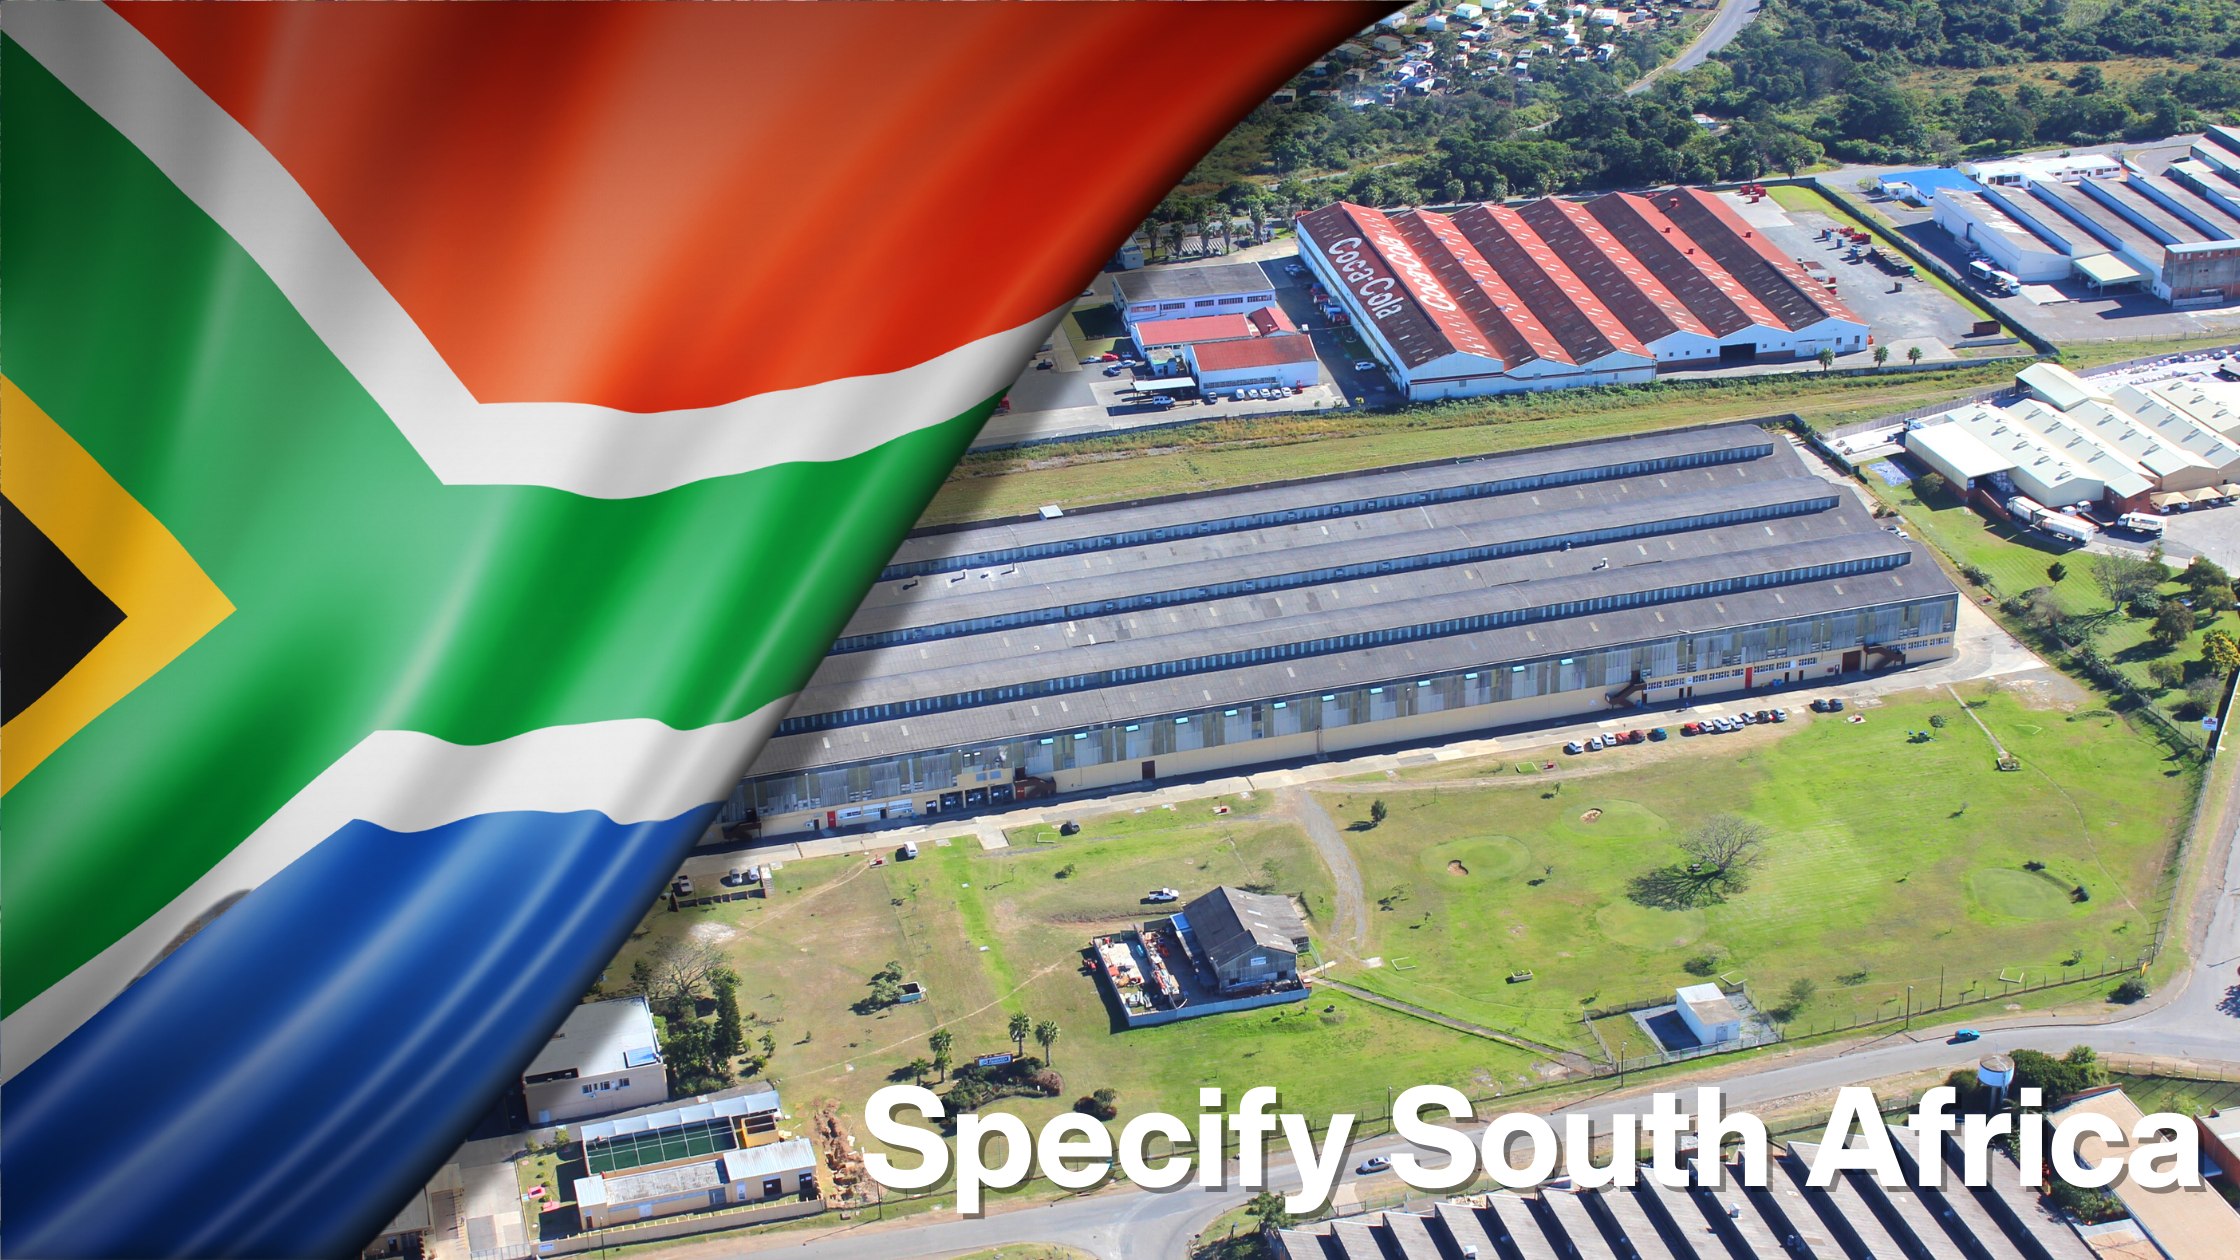 Specify South Africa